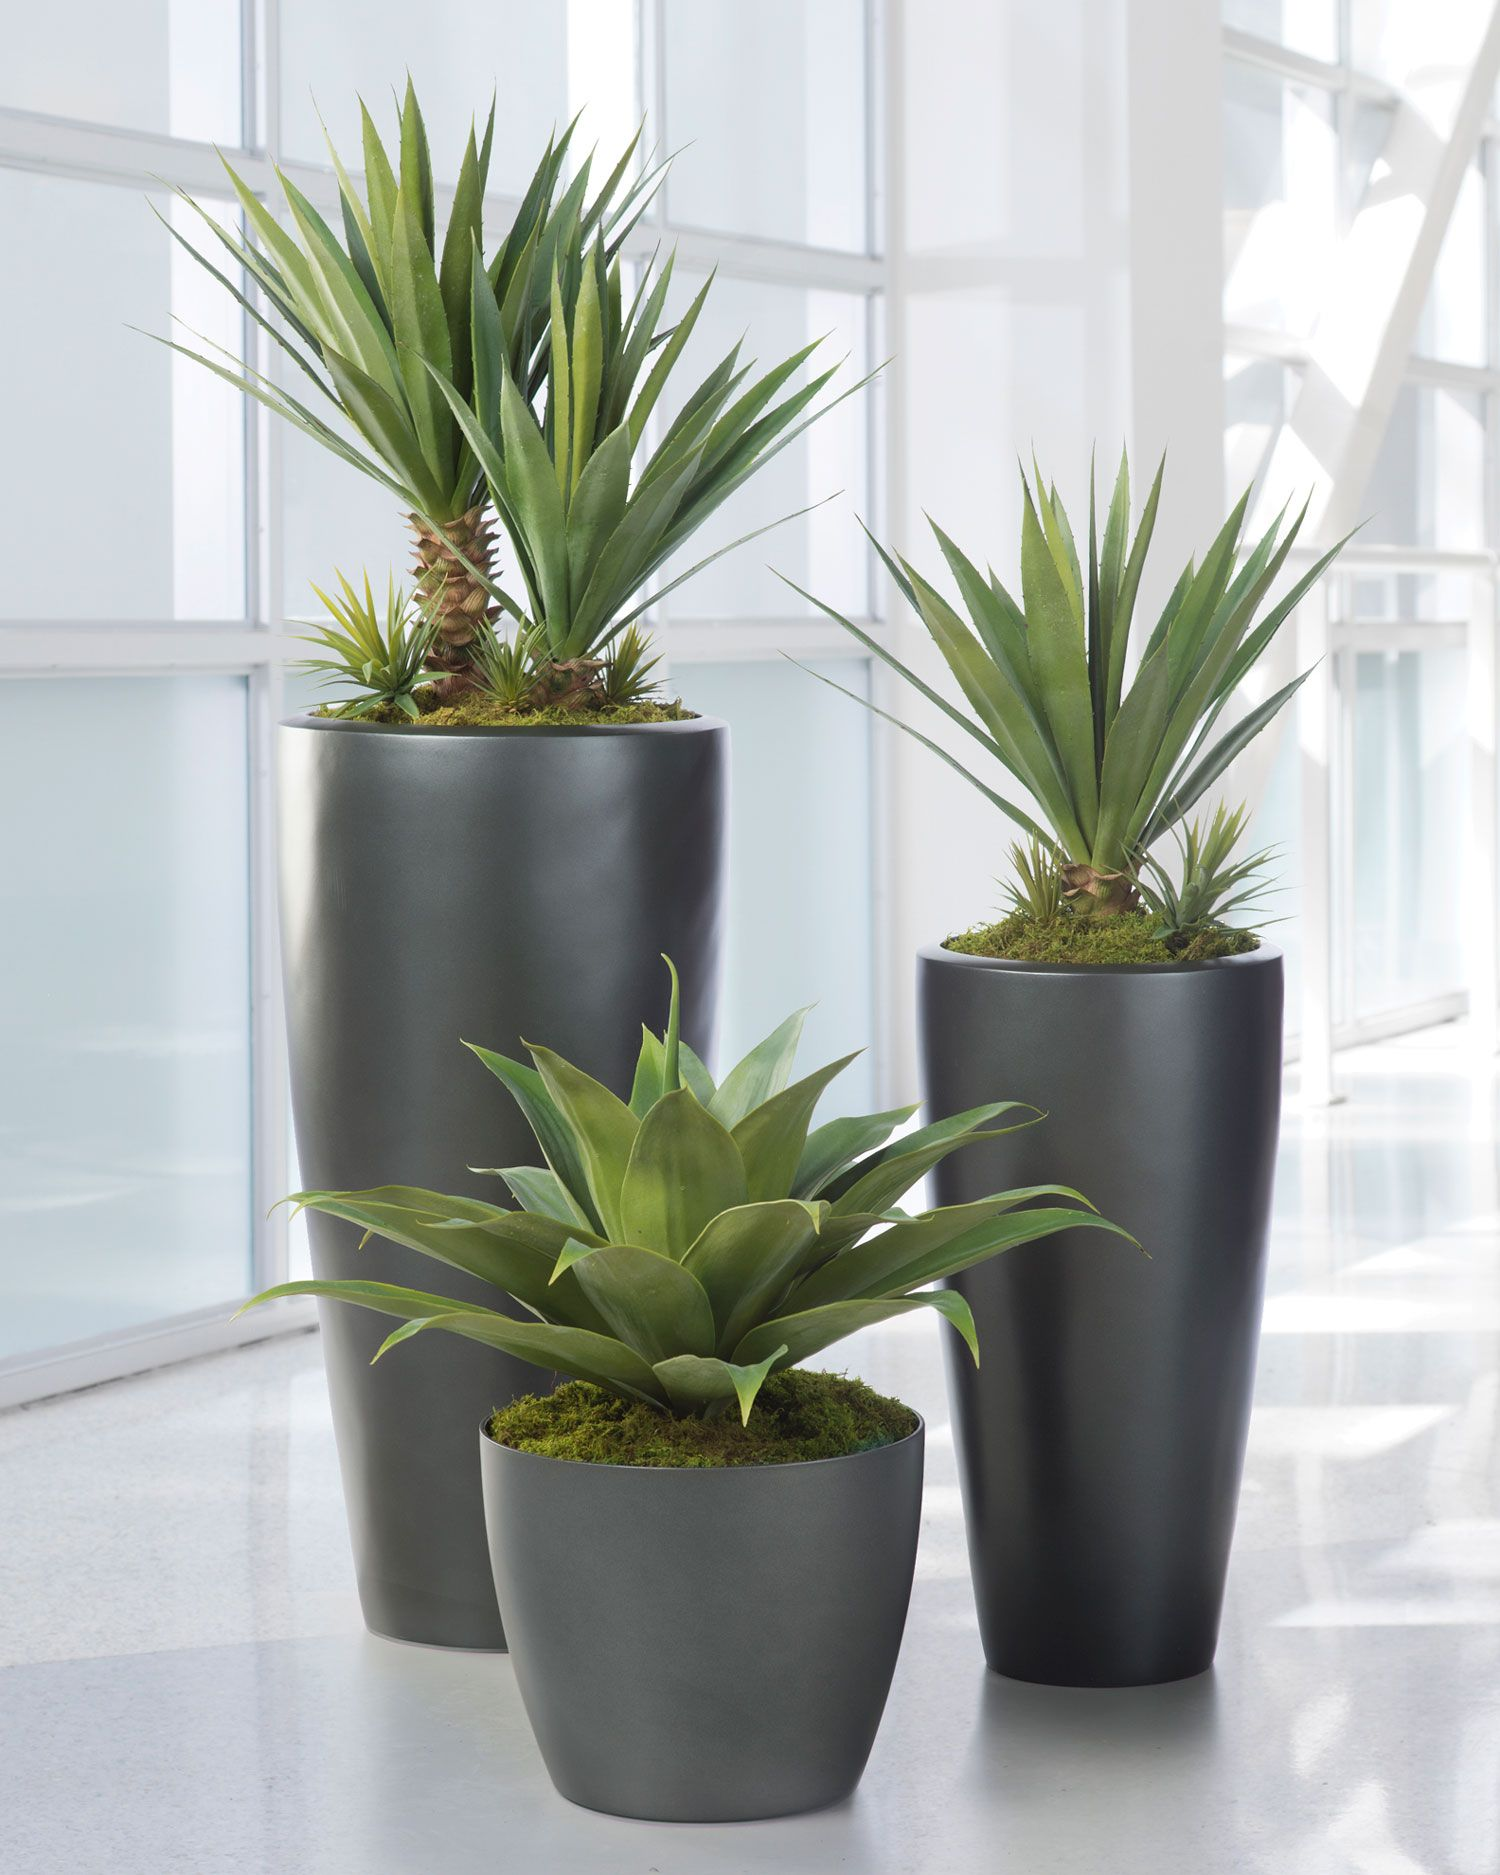 Agave Americana Artificial Succulent Plant Is An Ideal Specimen For